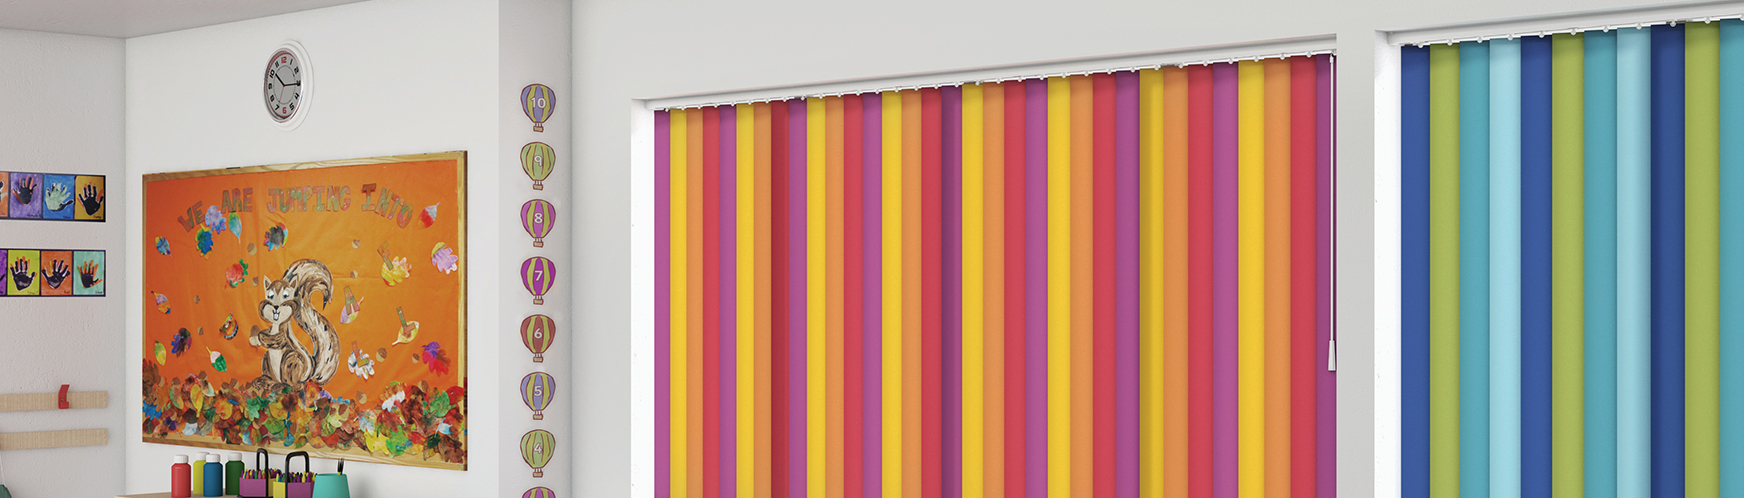 school blinds, classroom blinds